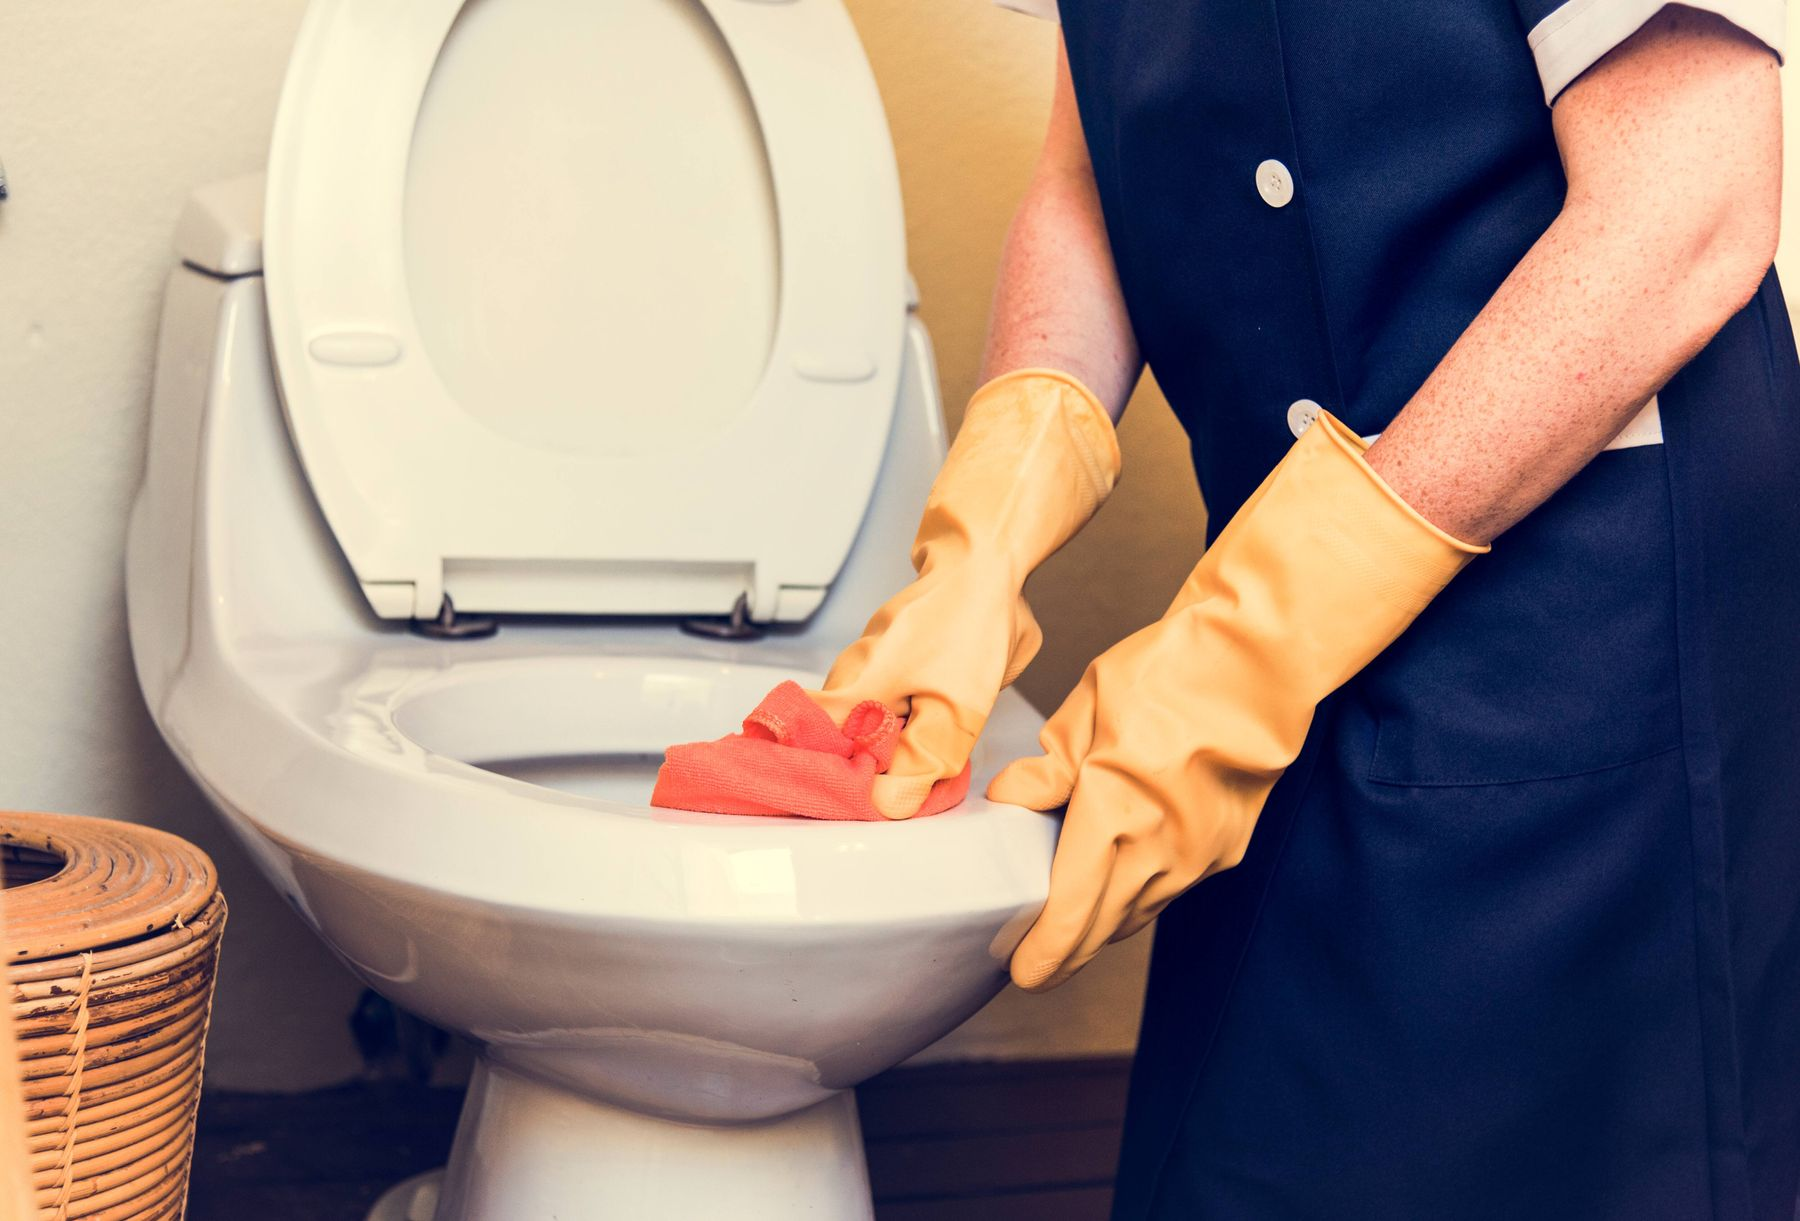 Toilet Cleaning Tips